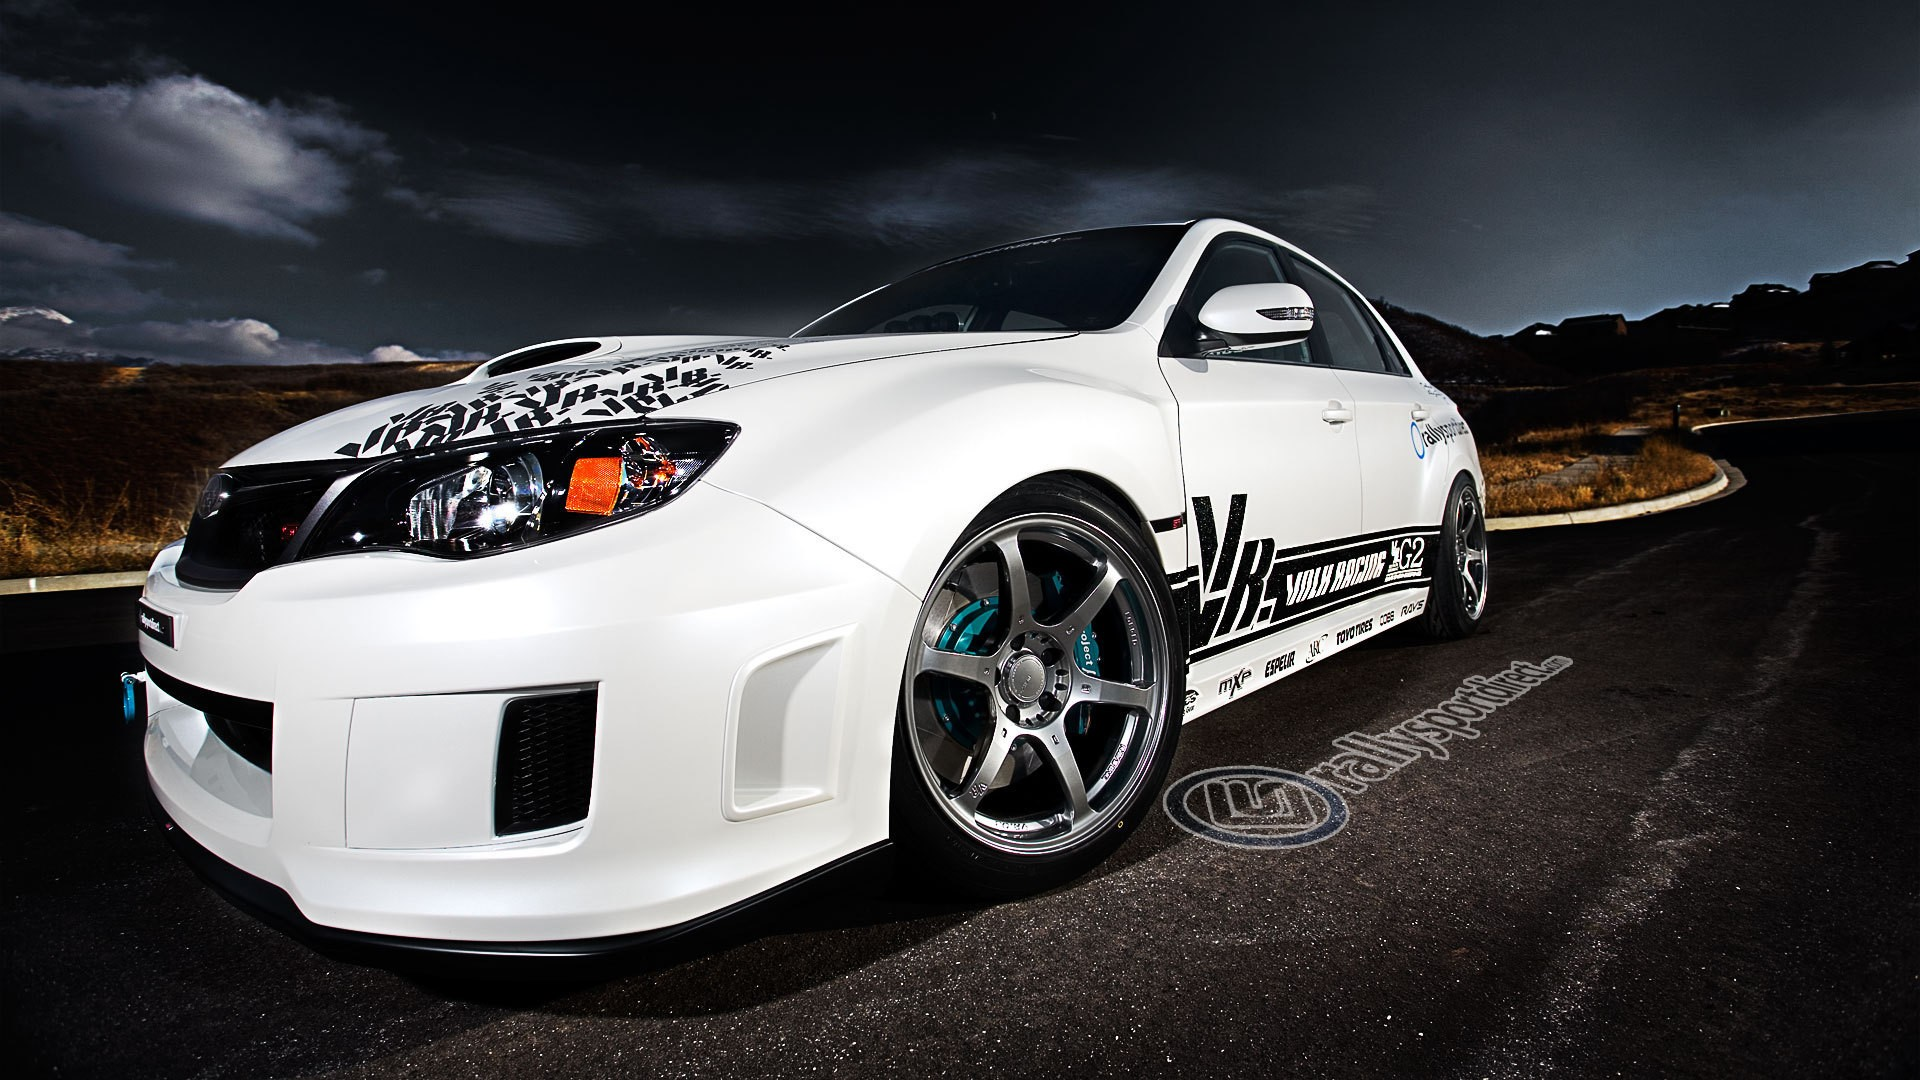 Cars Nissan Silvia S Jdm Wallpaper 1920x1080